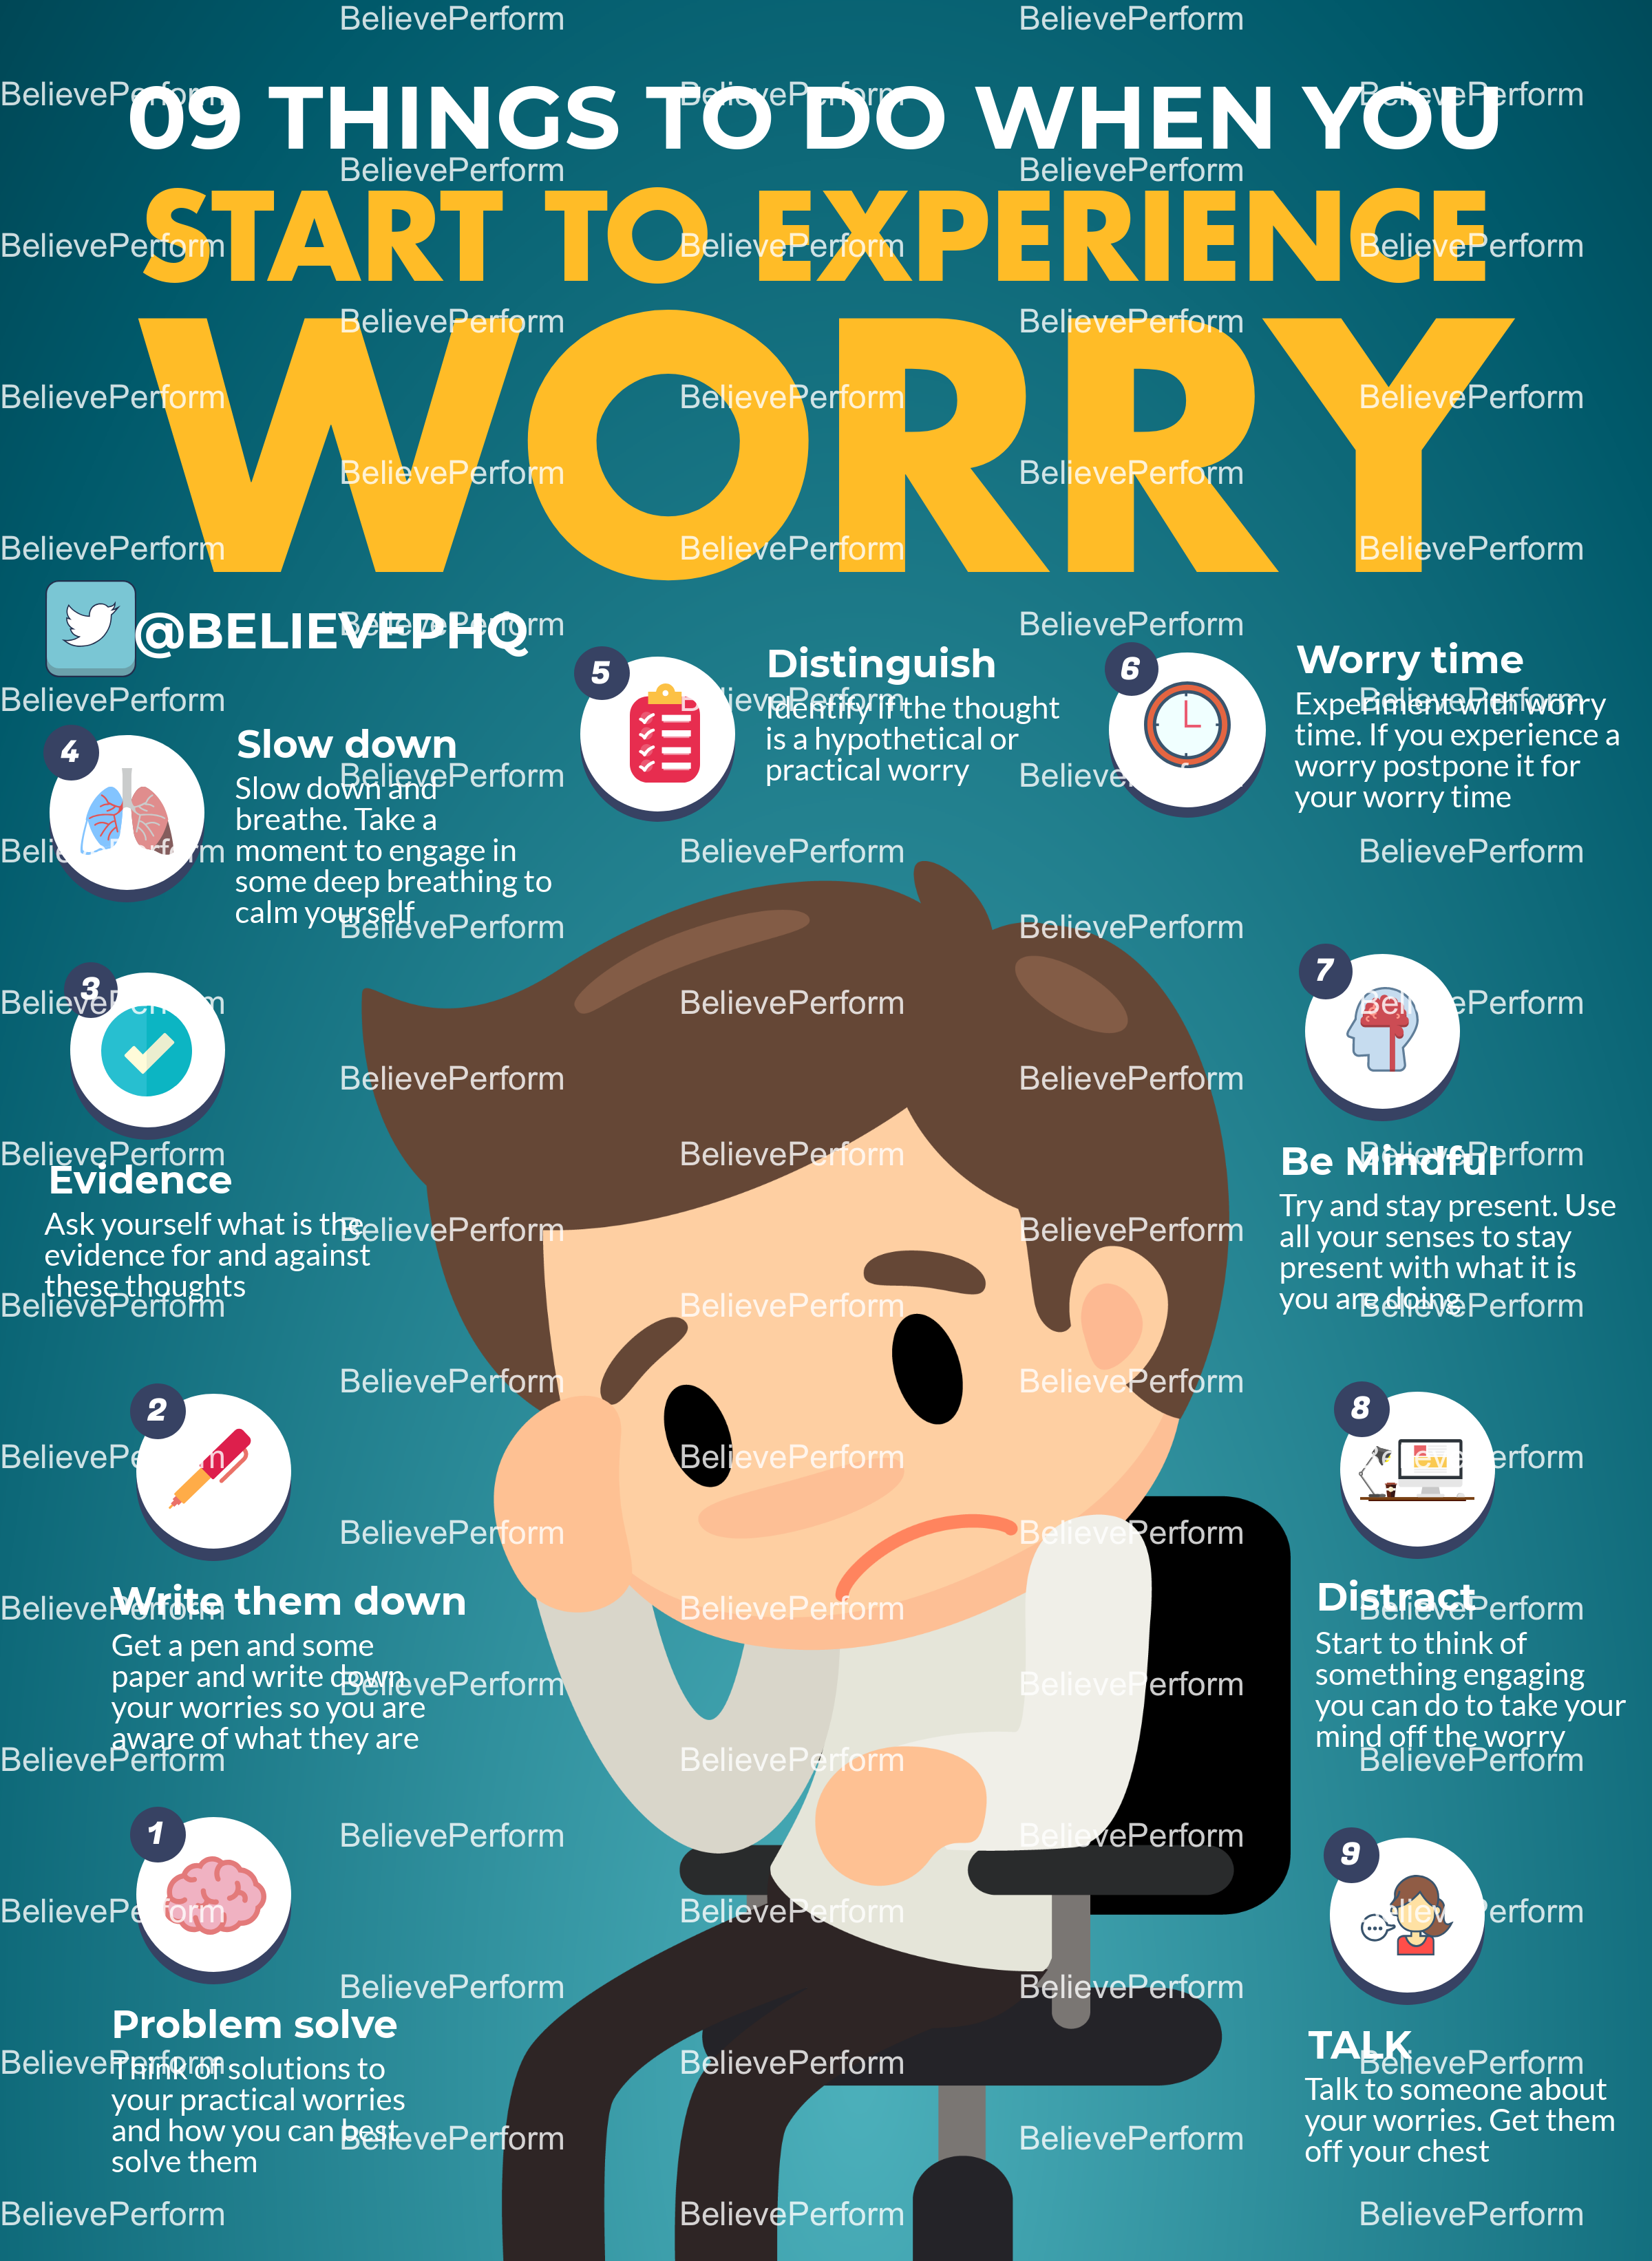 9 things to do when you start to experience worry